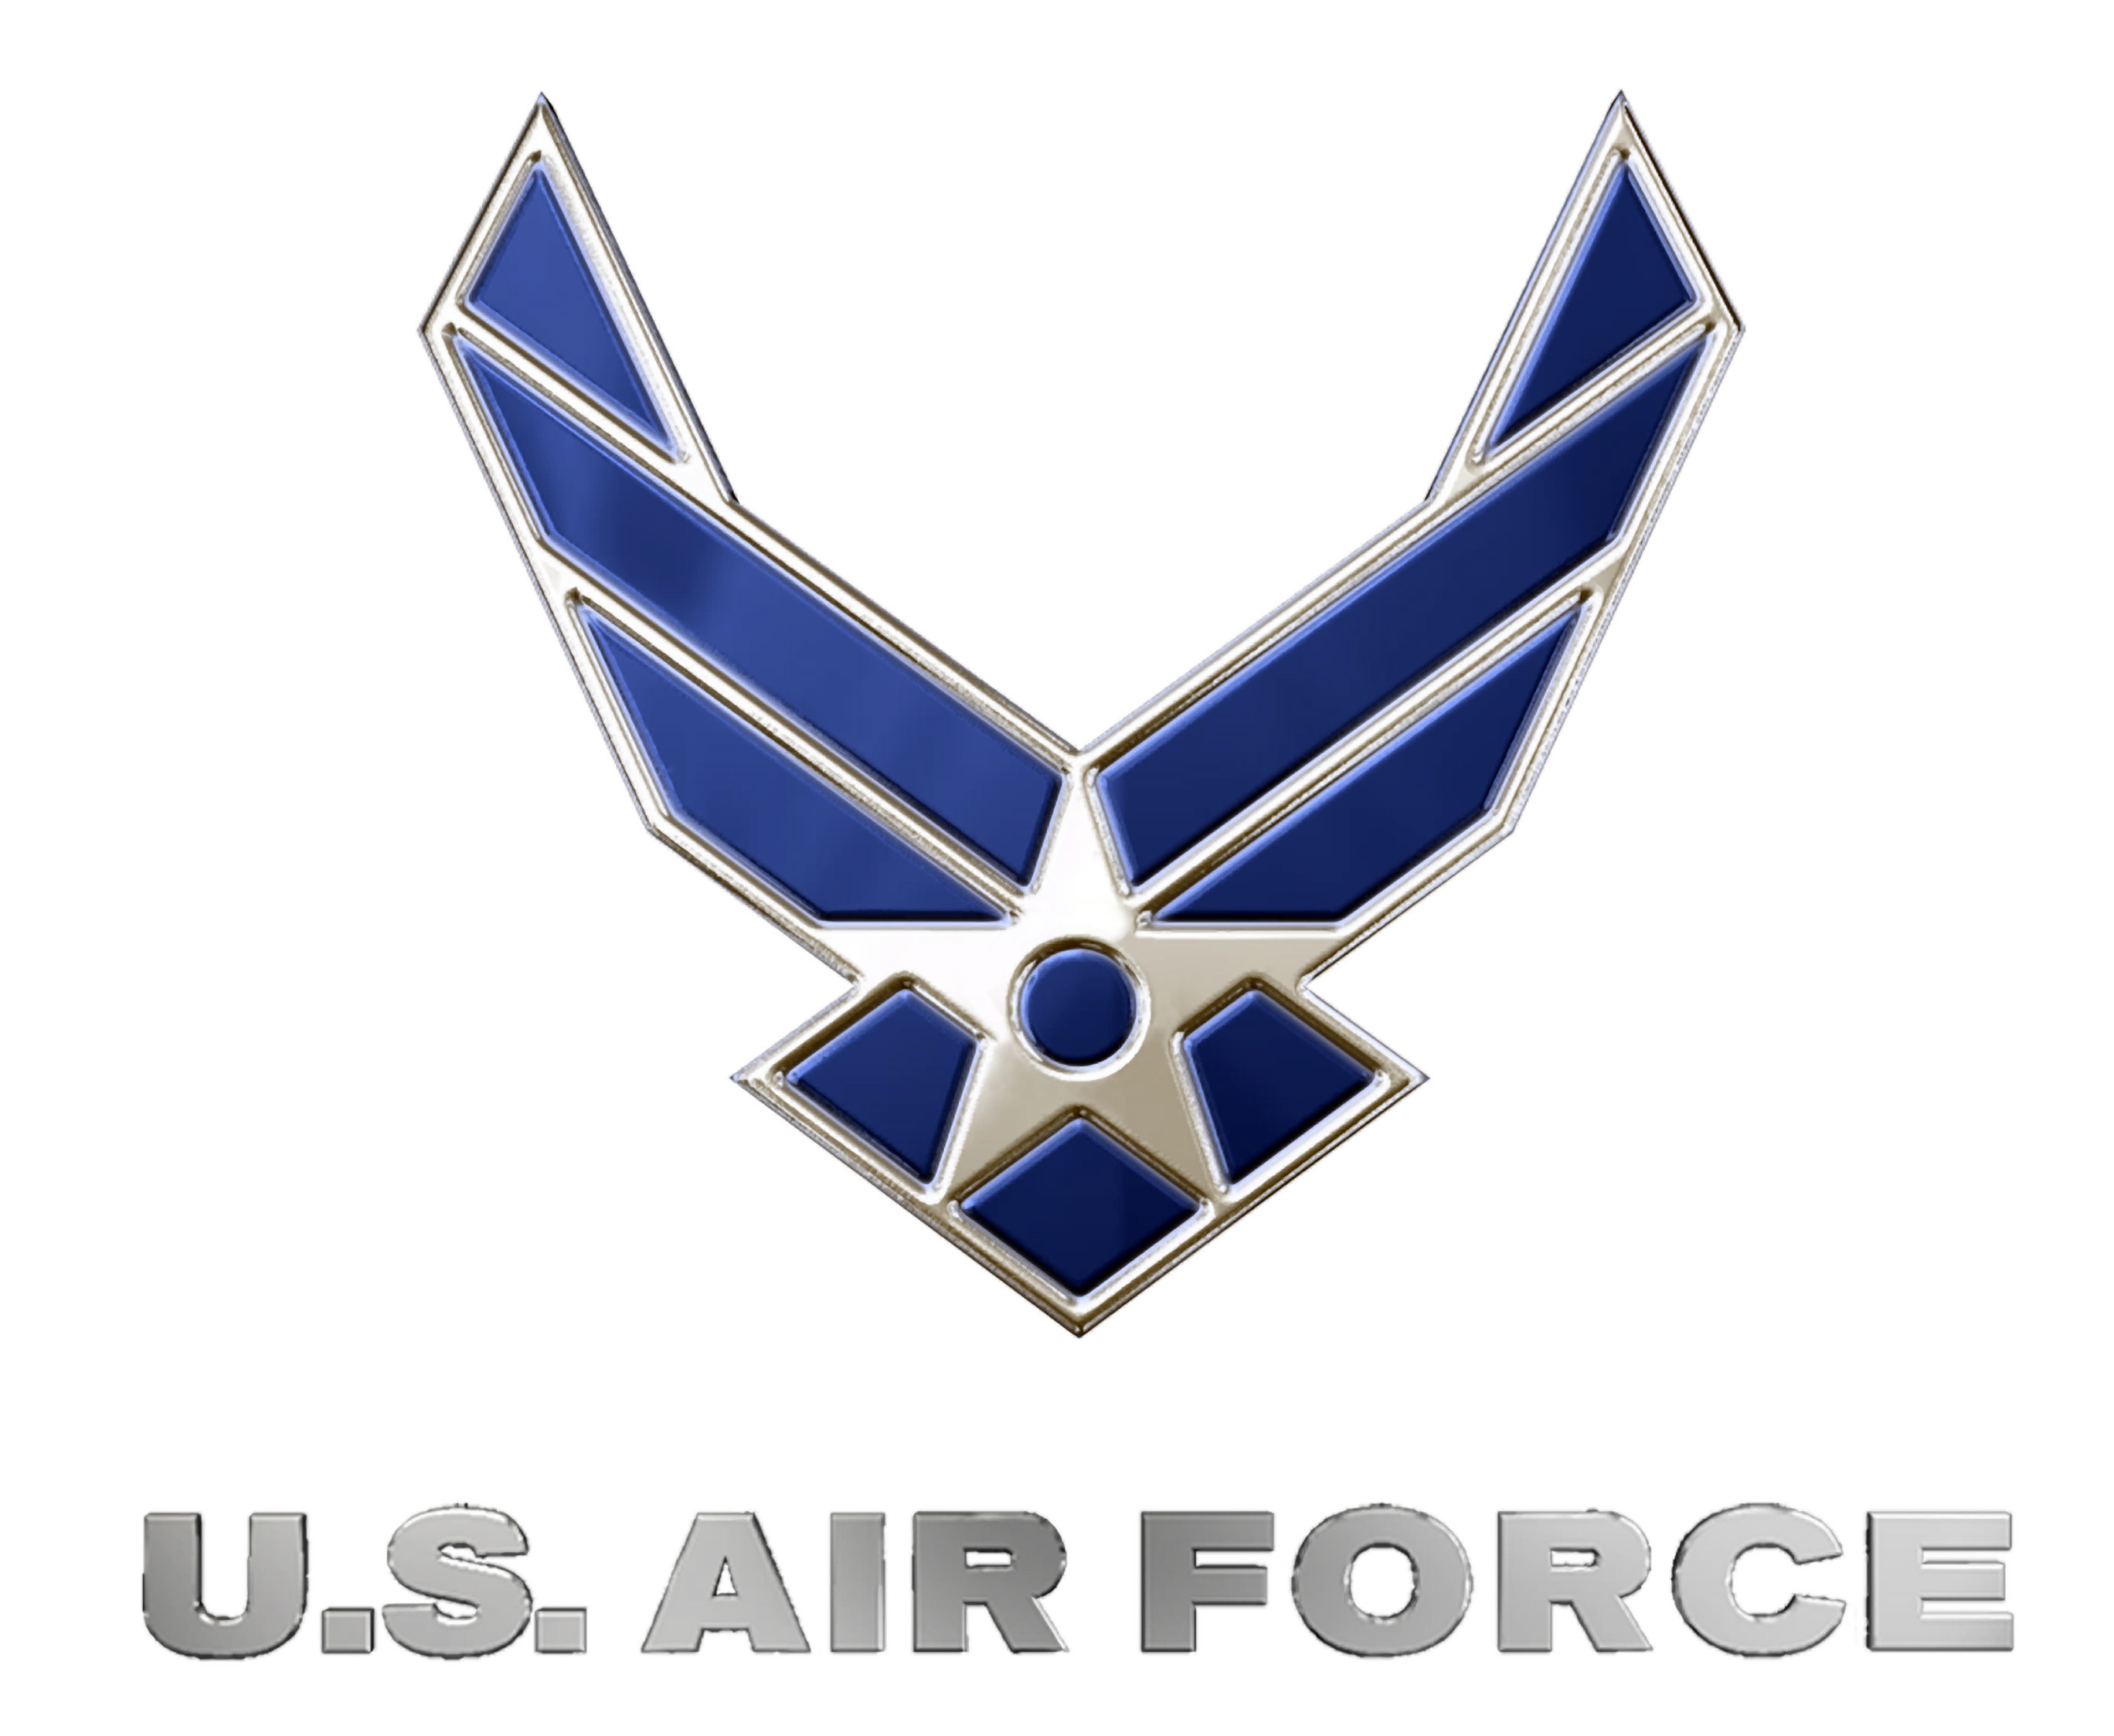 The Us Air Force Symbol Is Base On The Original Hap Arnold Wings